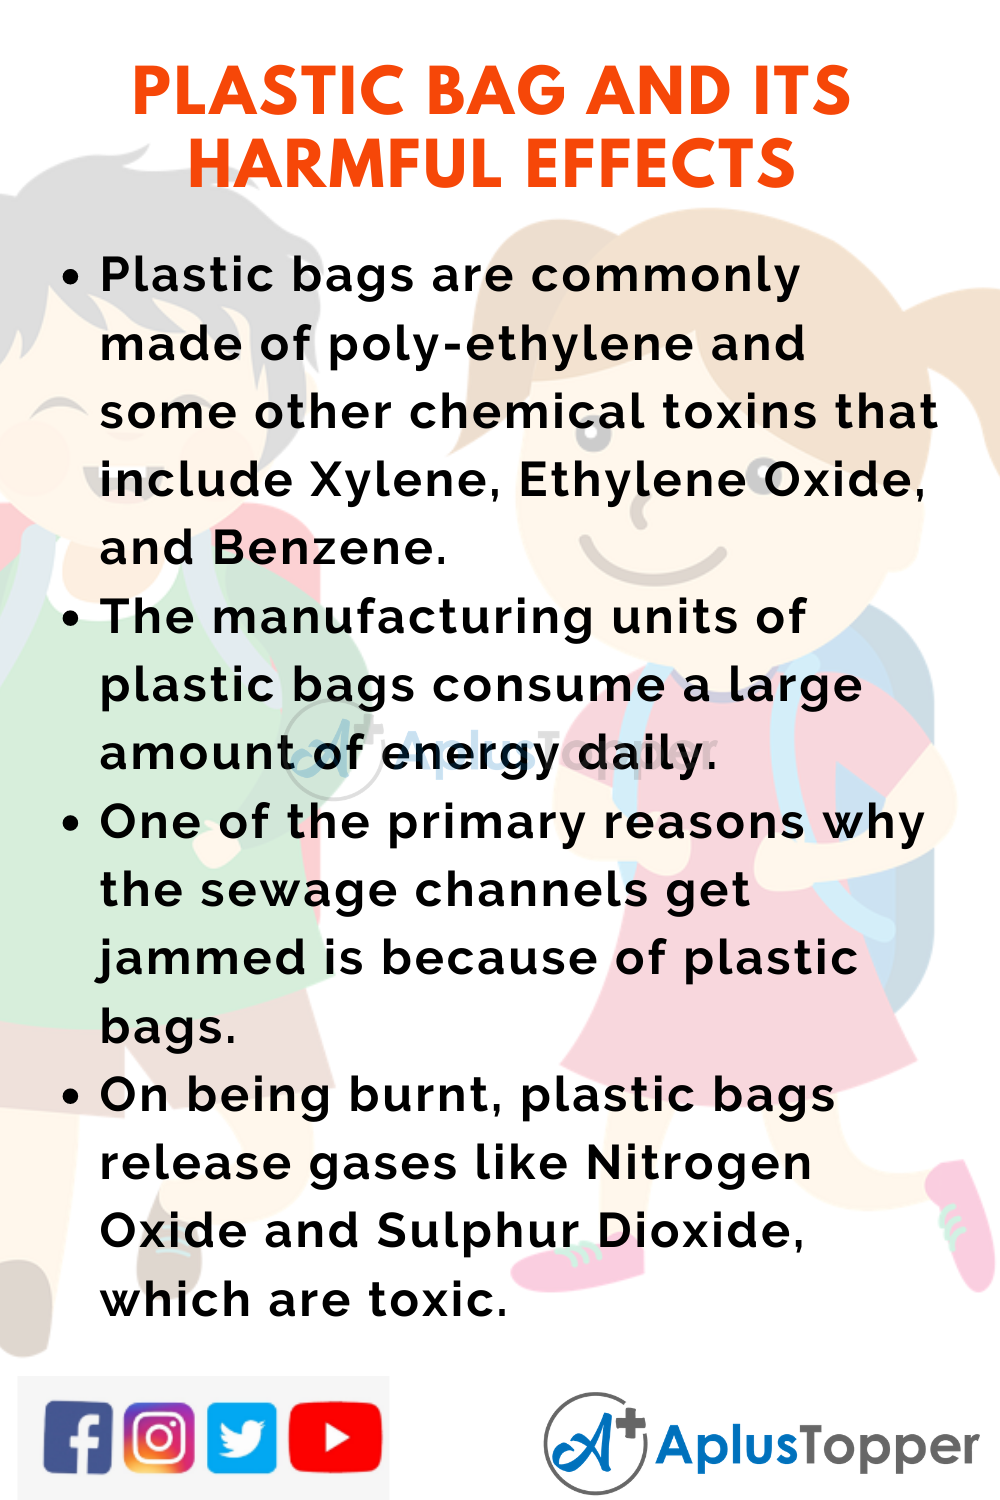 10 Lines on Plastic Bag And Its Harmful Effects for Higher Class Students